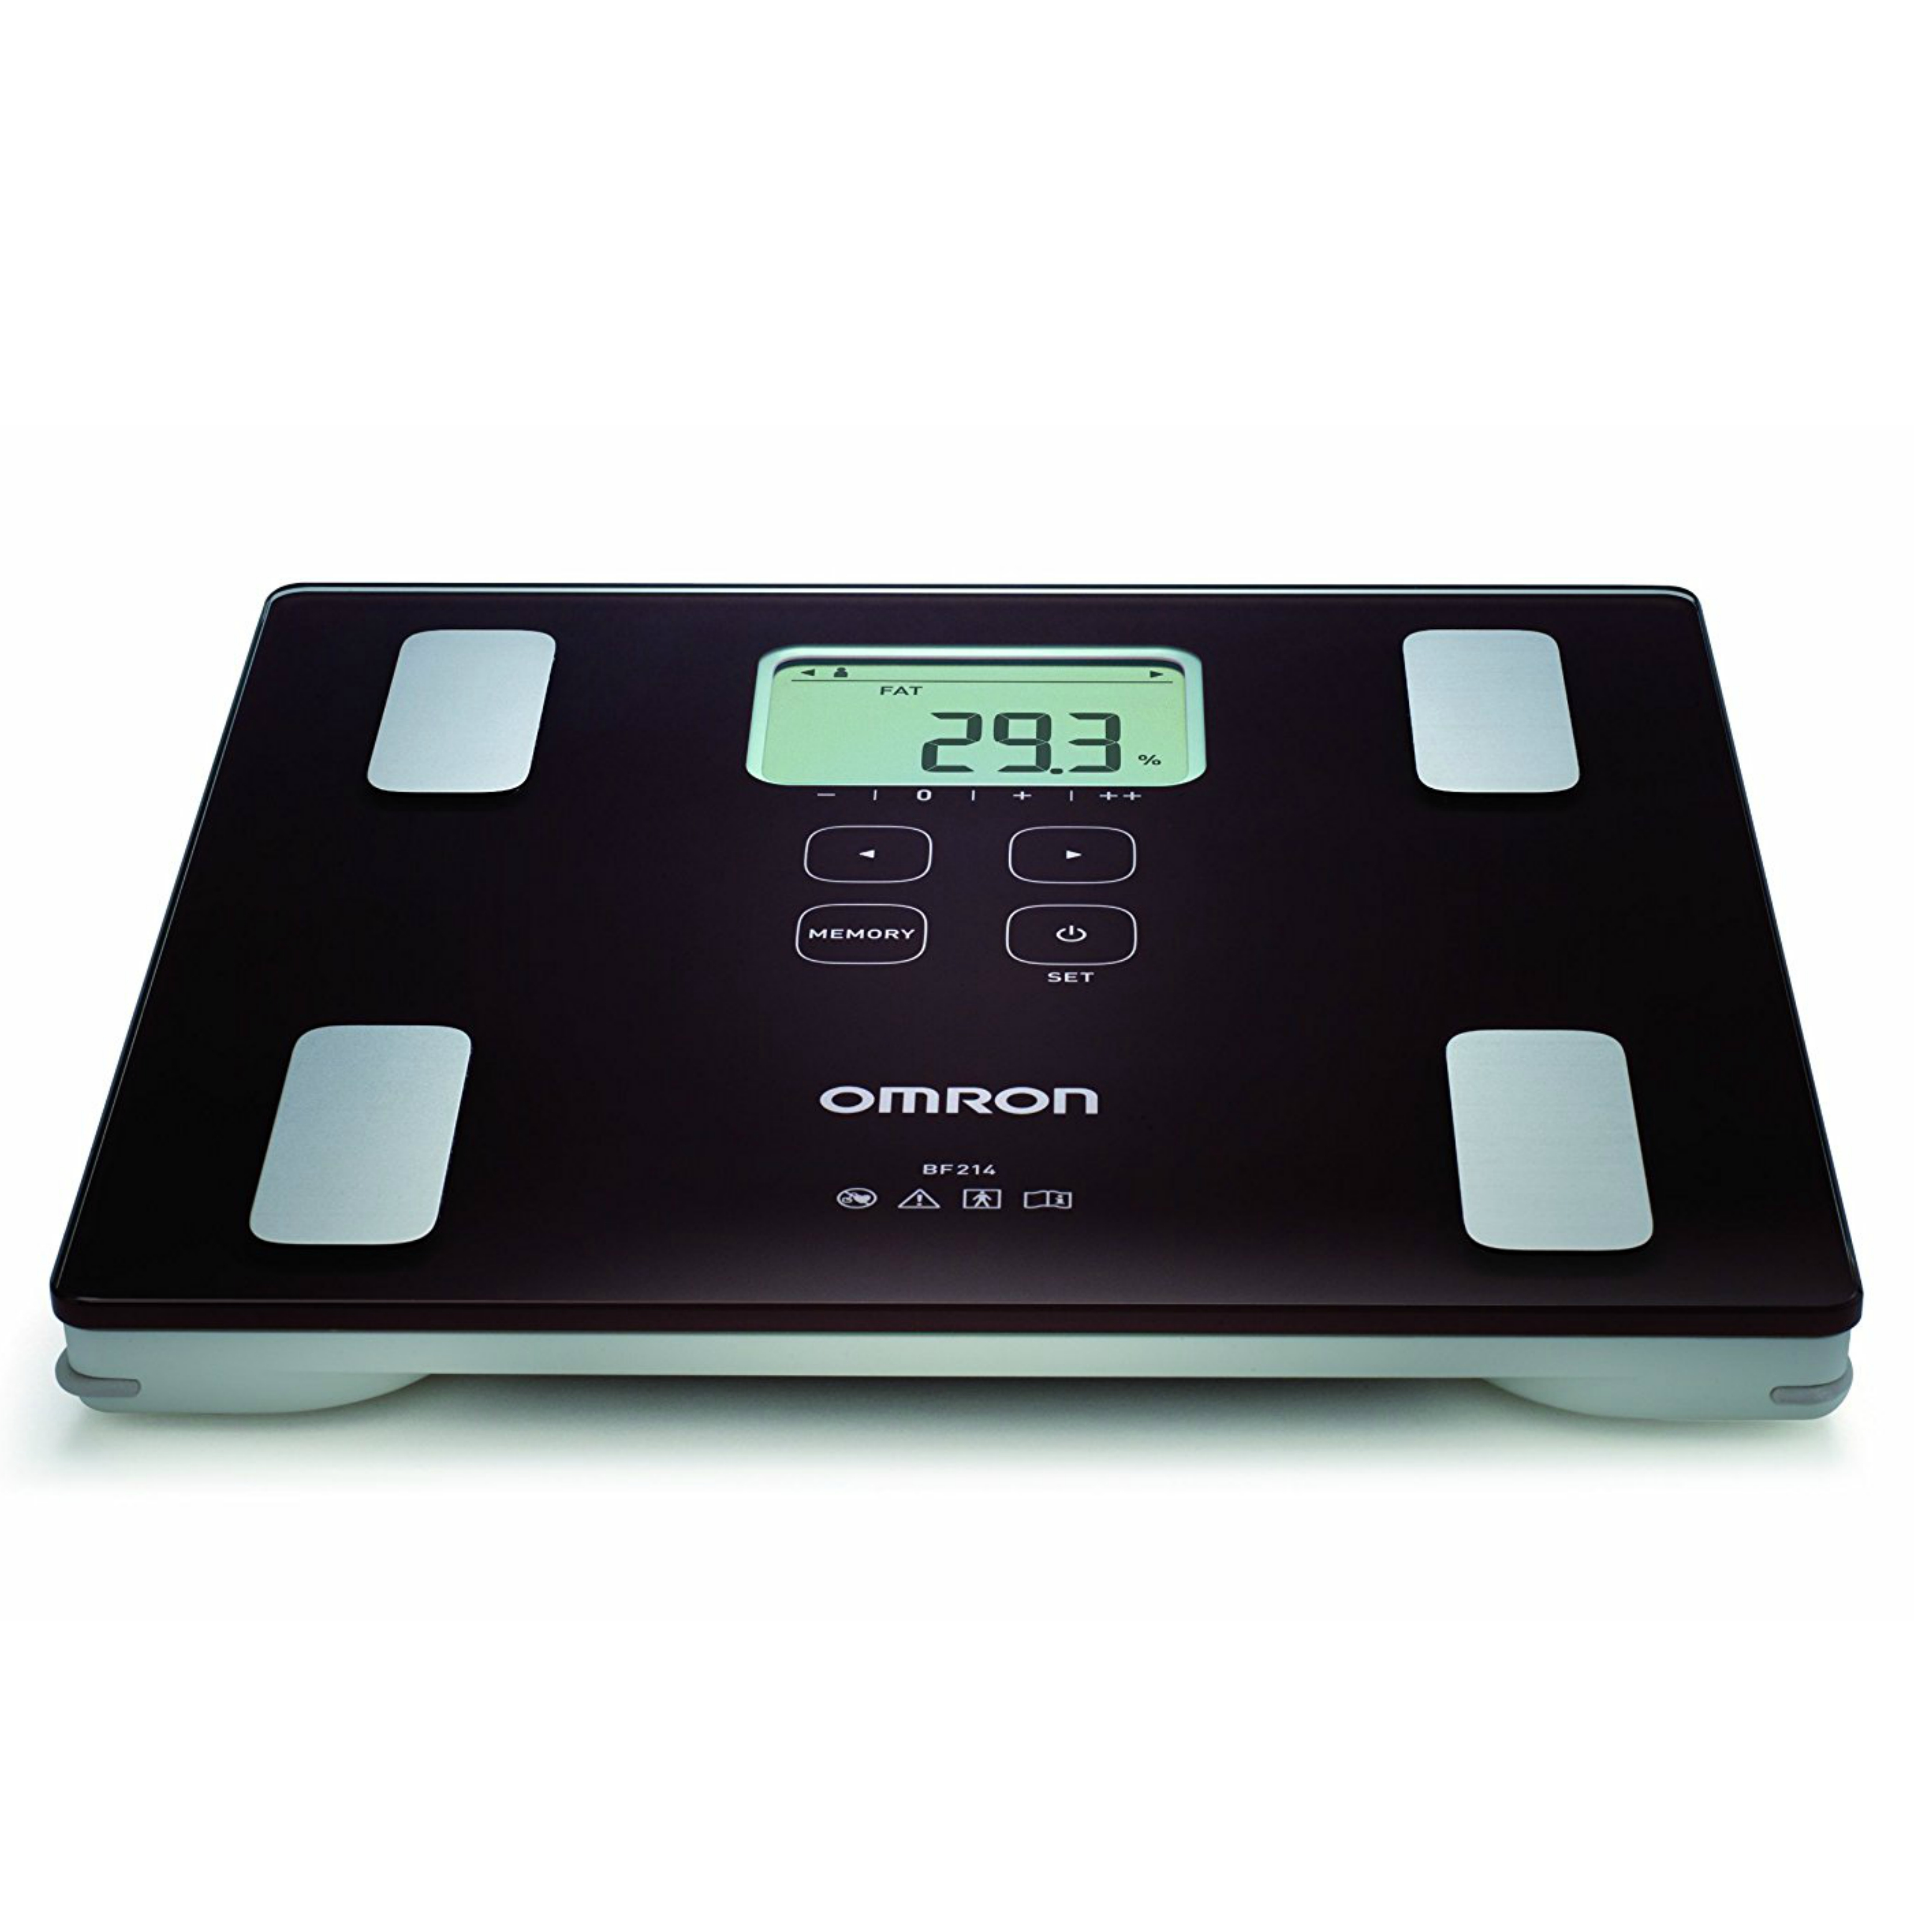 Omron BF214 Digital Body Composition Monitor Weight Scale | For BMI & Body Fat | NEW